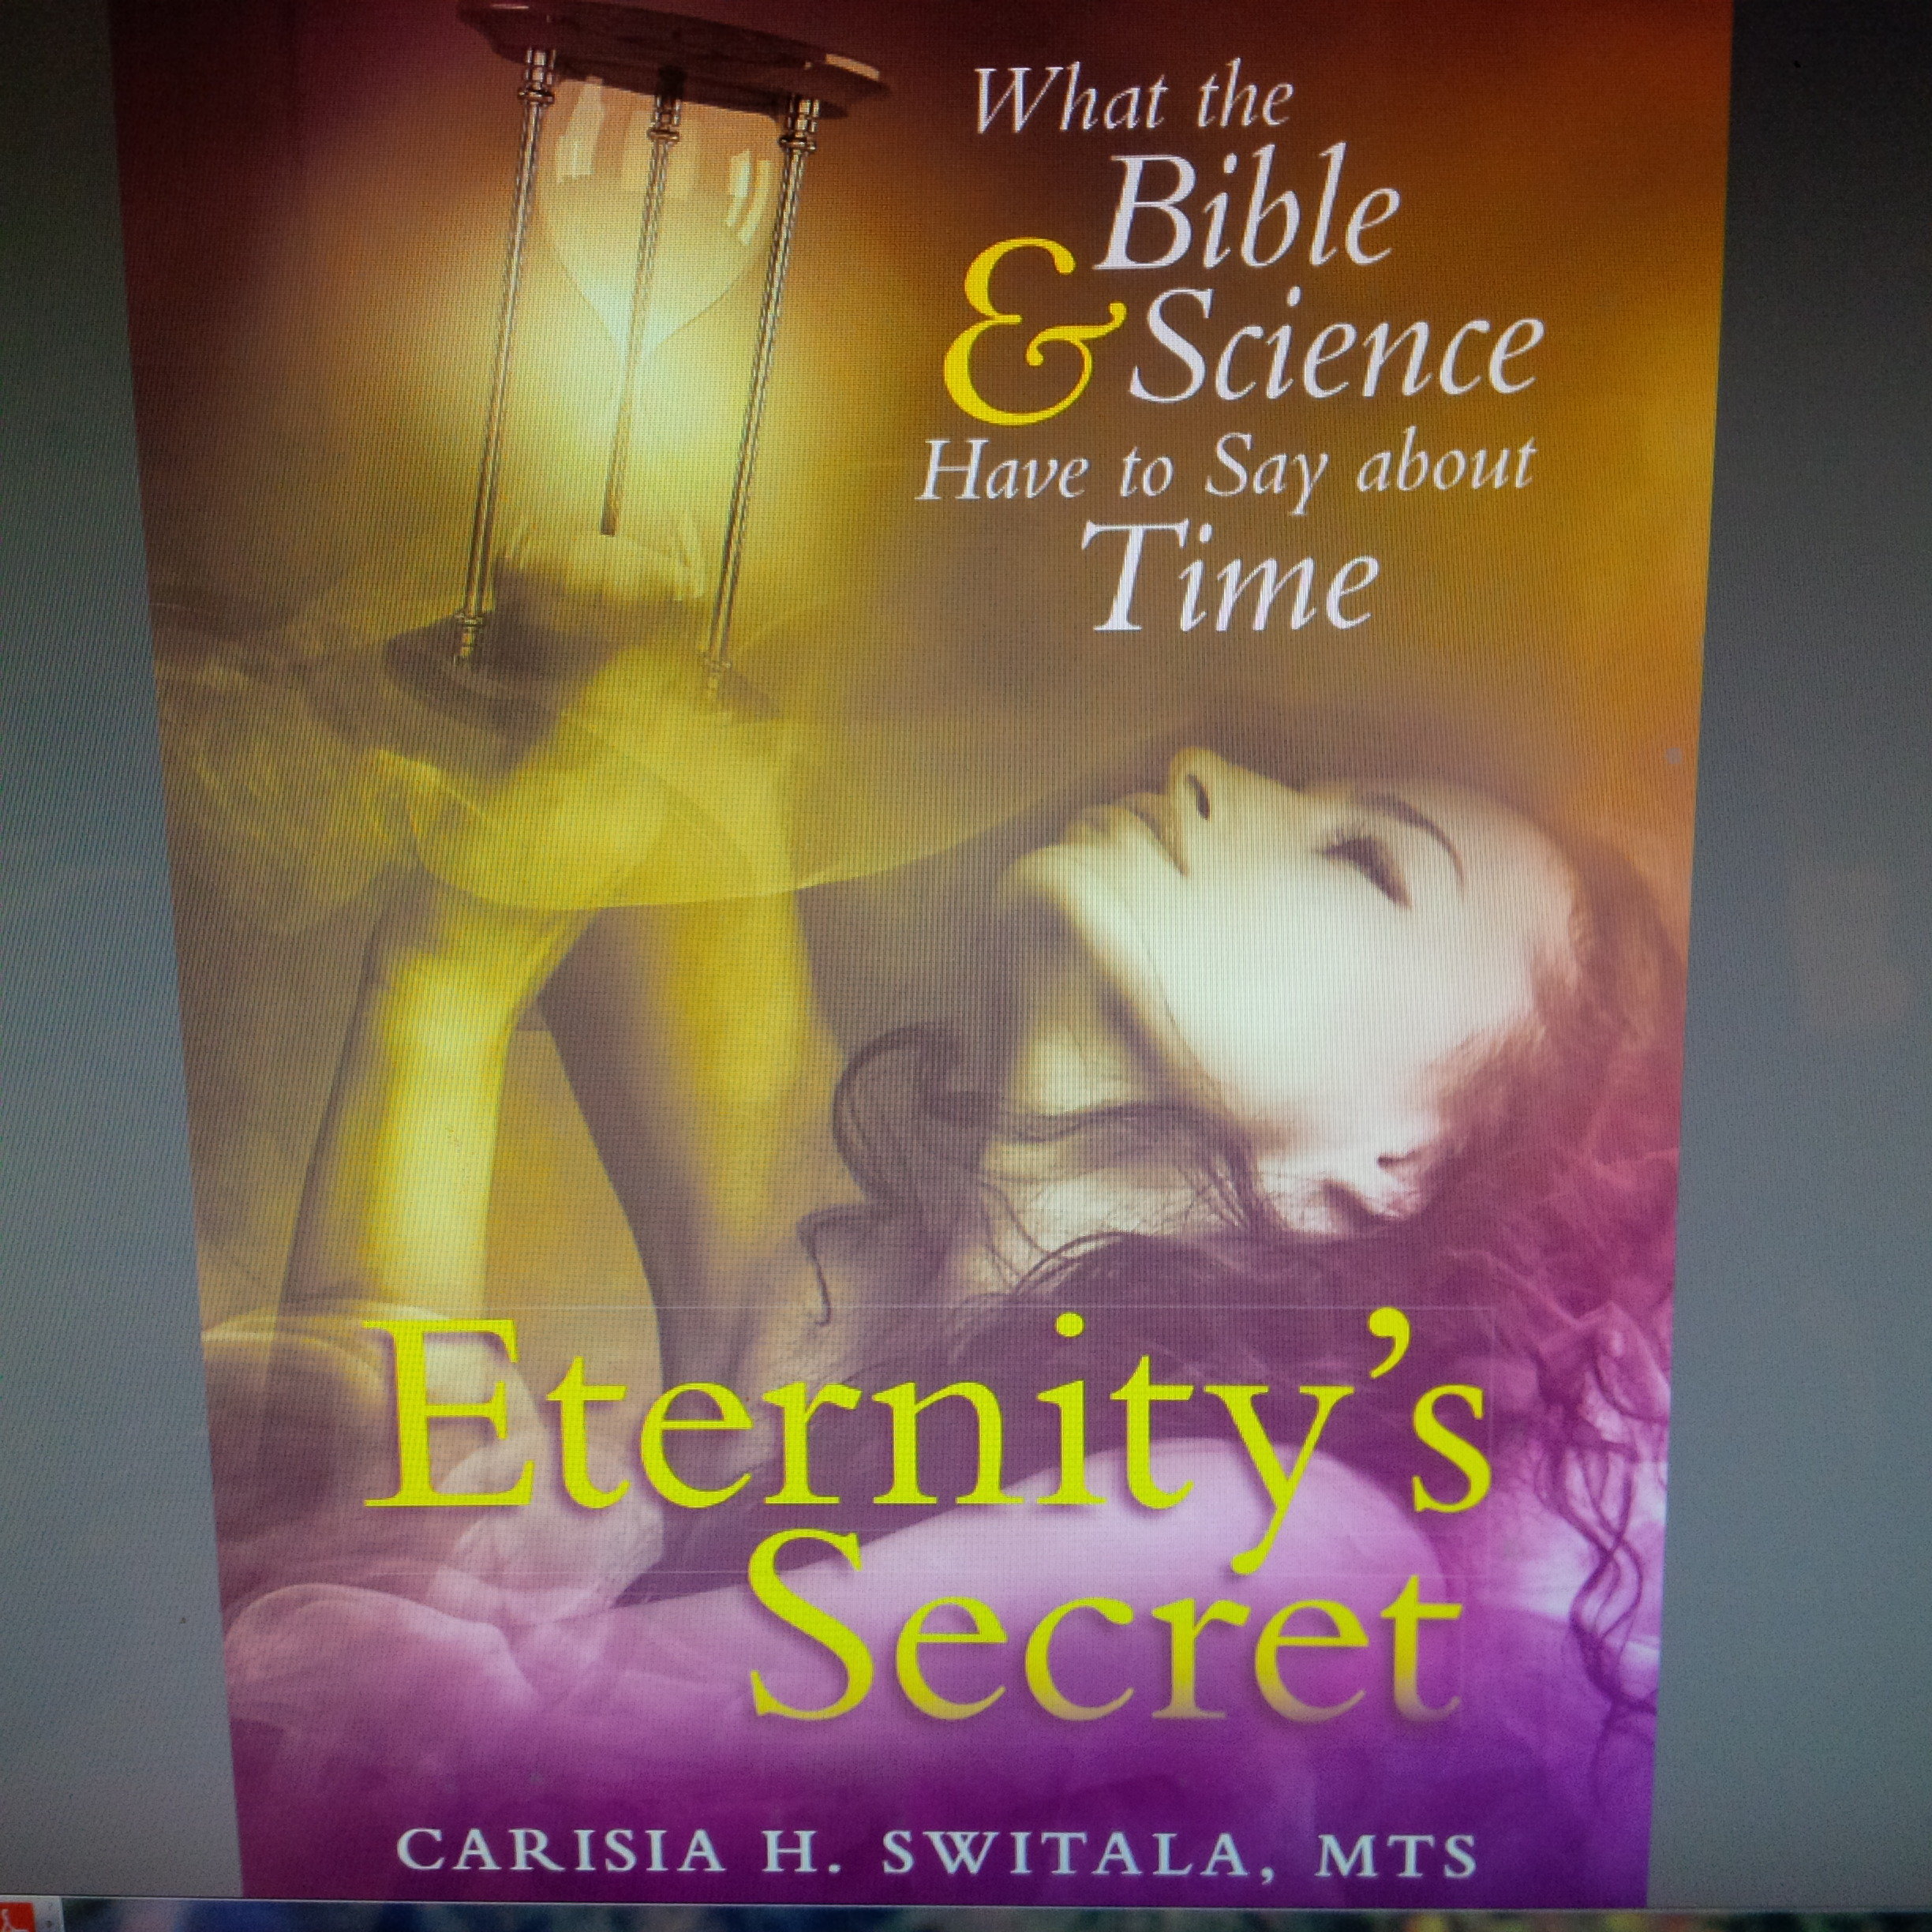 Eternity's Secret: What the Bible & Science Have to Say about Time